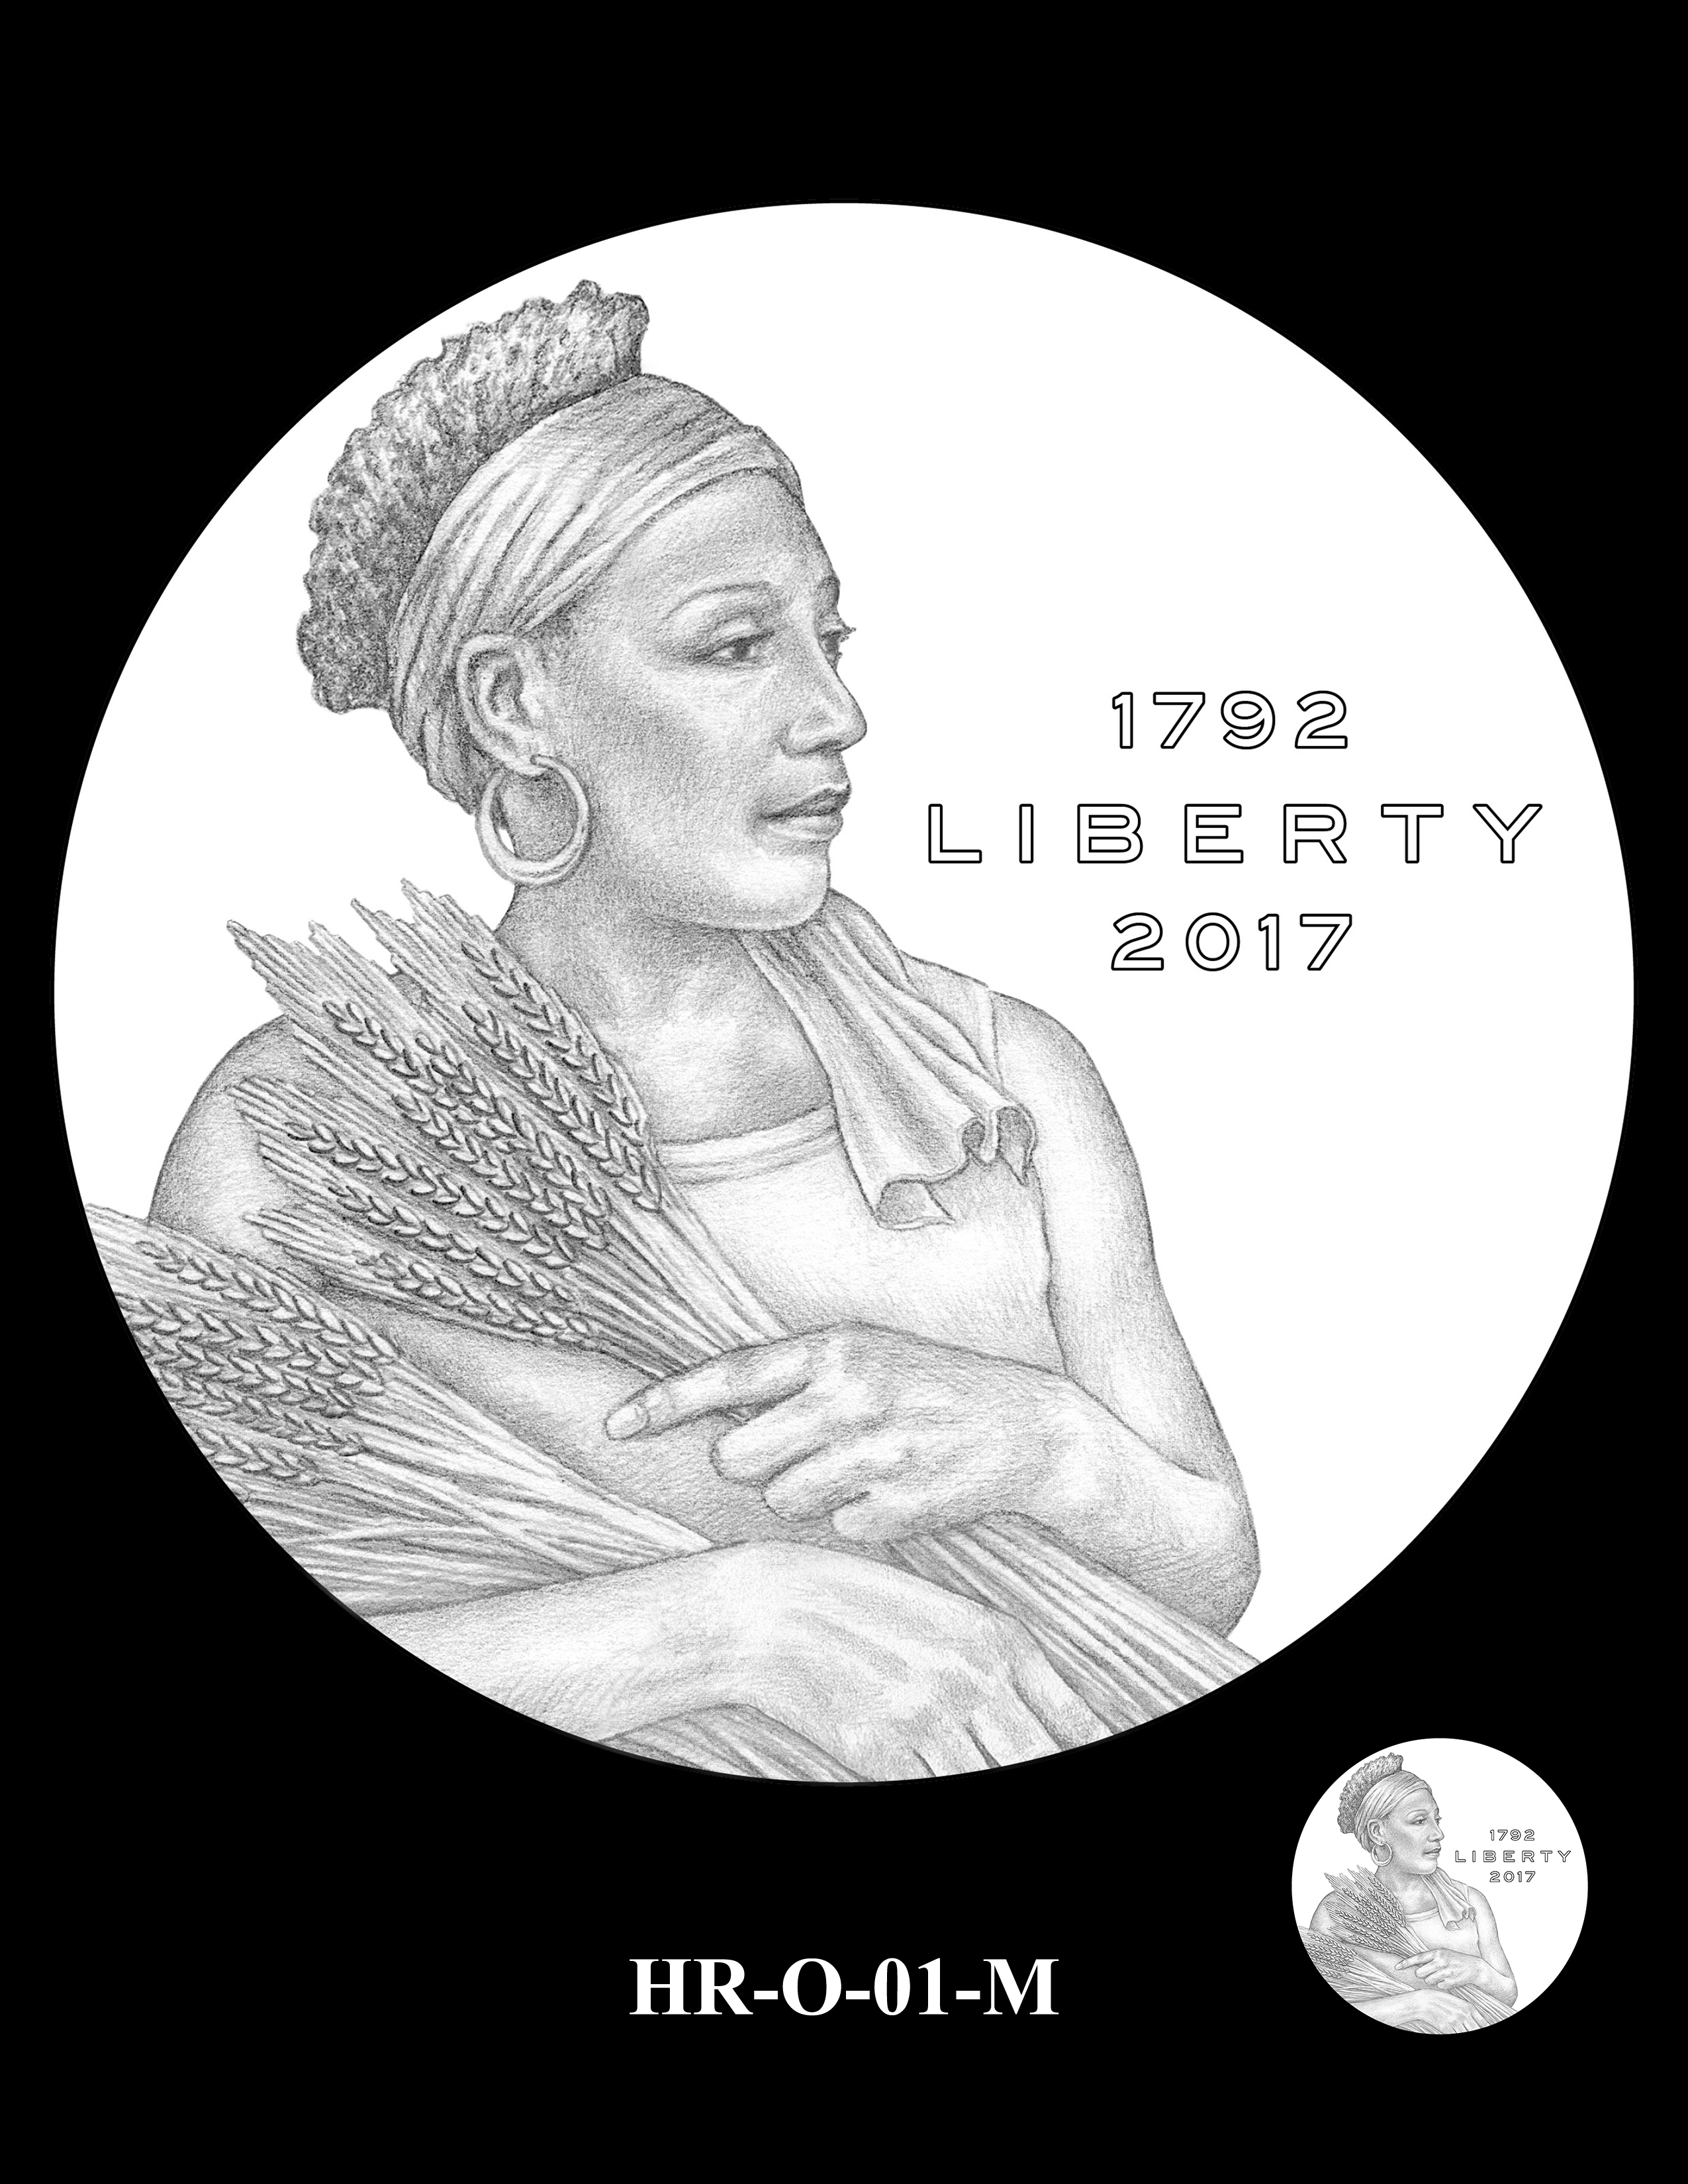 HR-O-01-M - 2017 American Liberty High Relief Gold Coin and Silver Medal Program